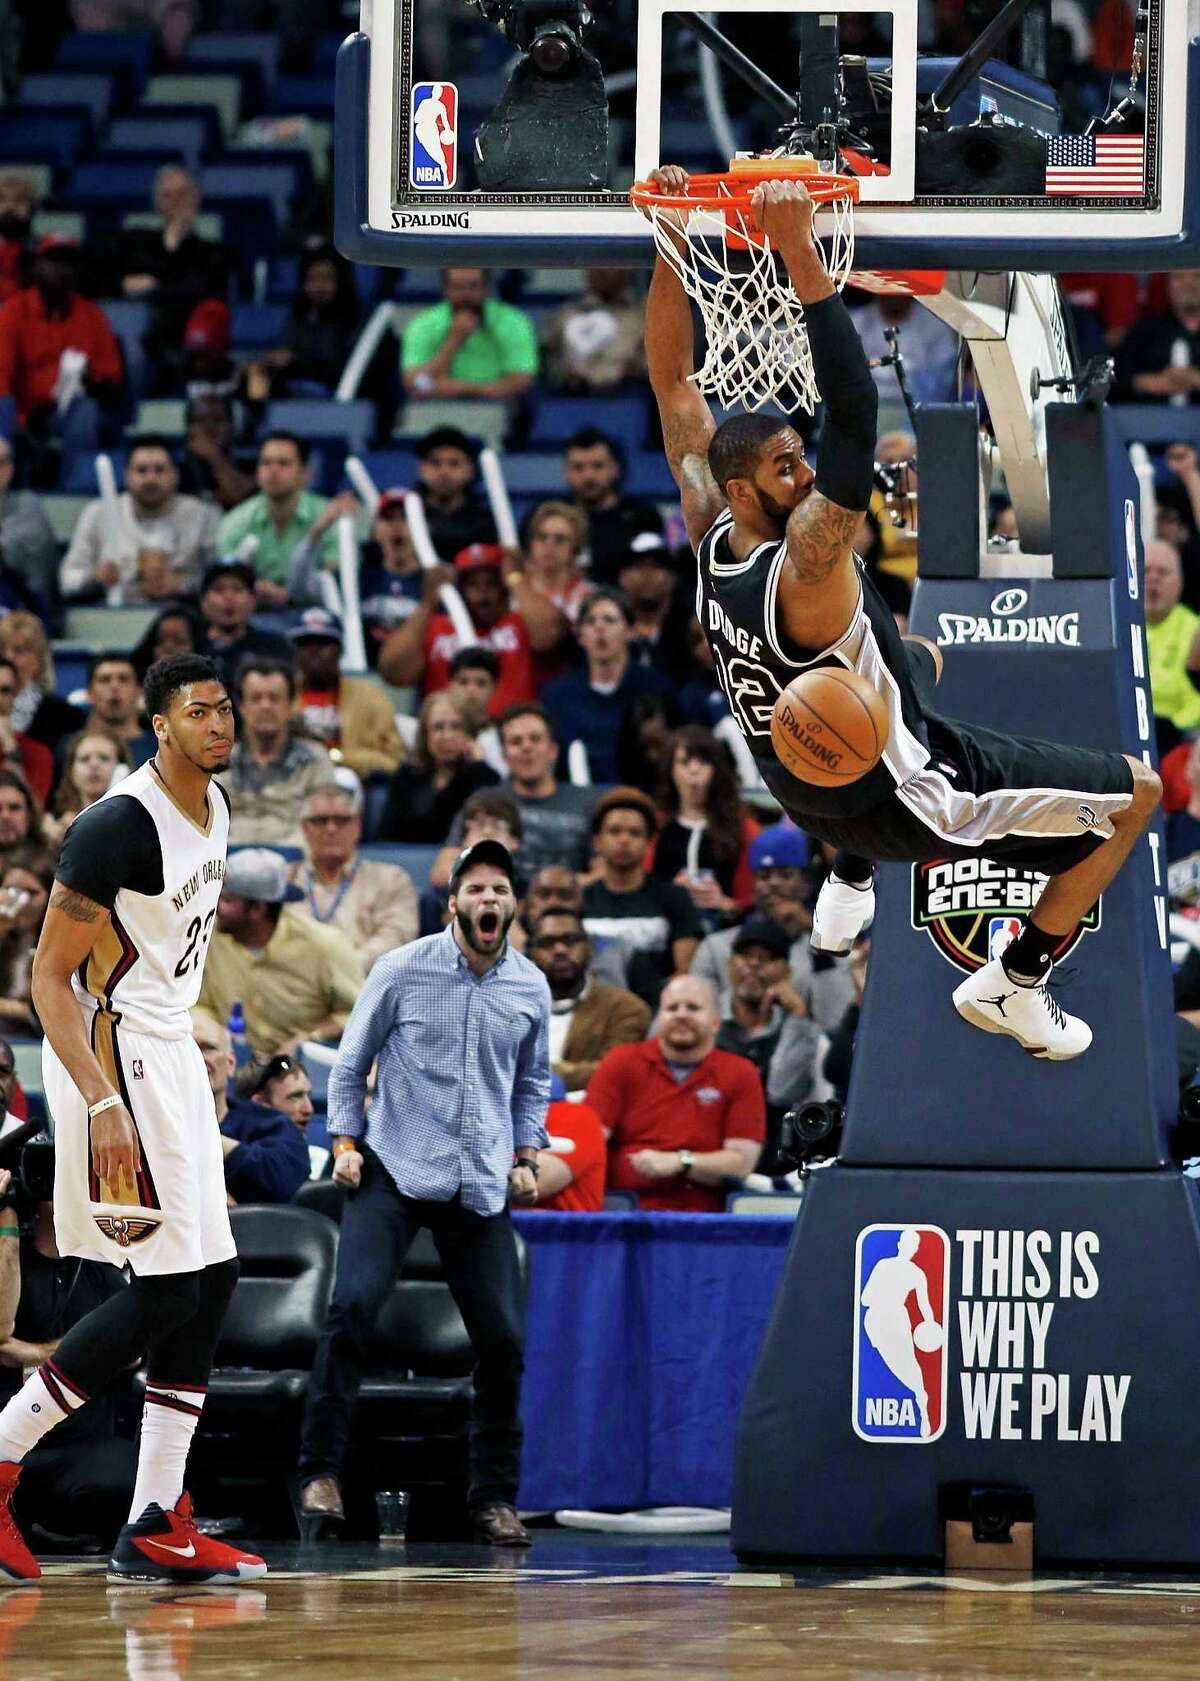 San Antonio Spurs forward LaMarcus Aldridge (12) dunks as New Orleans Pelicans forward Anthony Davis watches during the first half of an NBA basketball game in New Orleans, Thursday, March 3, 2016. (AP Photo/Max Becherer)